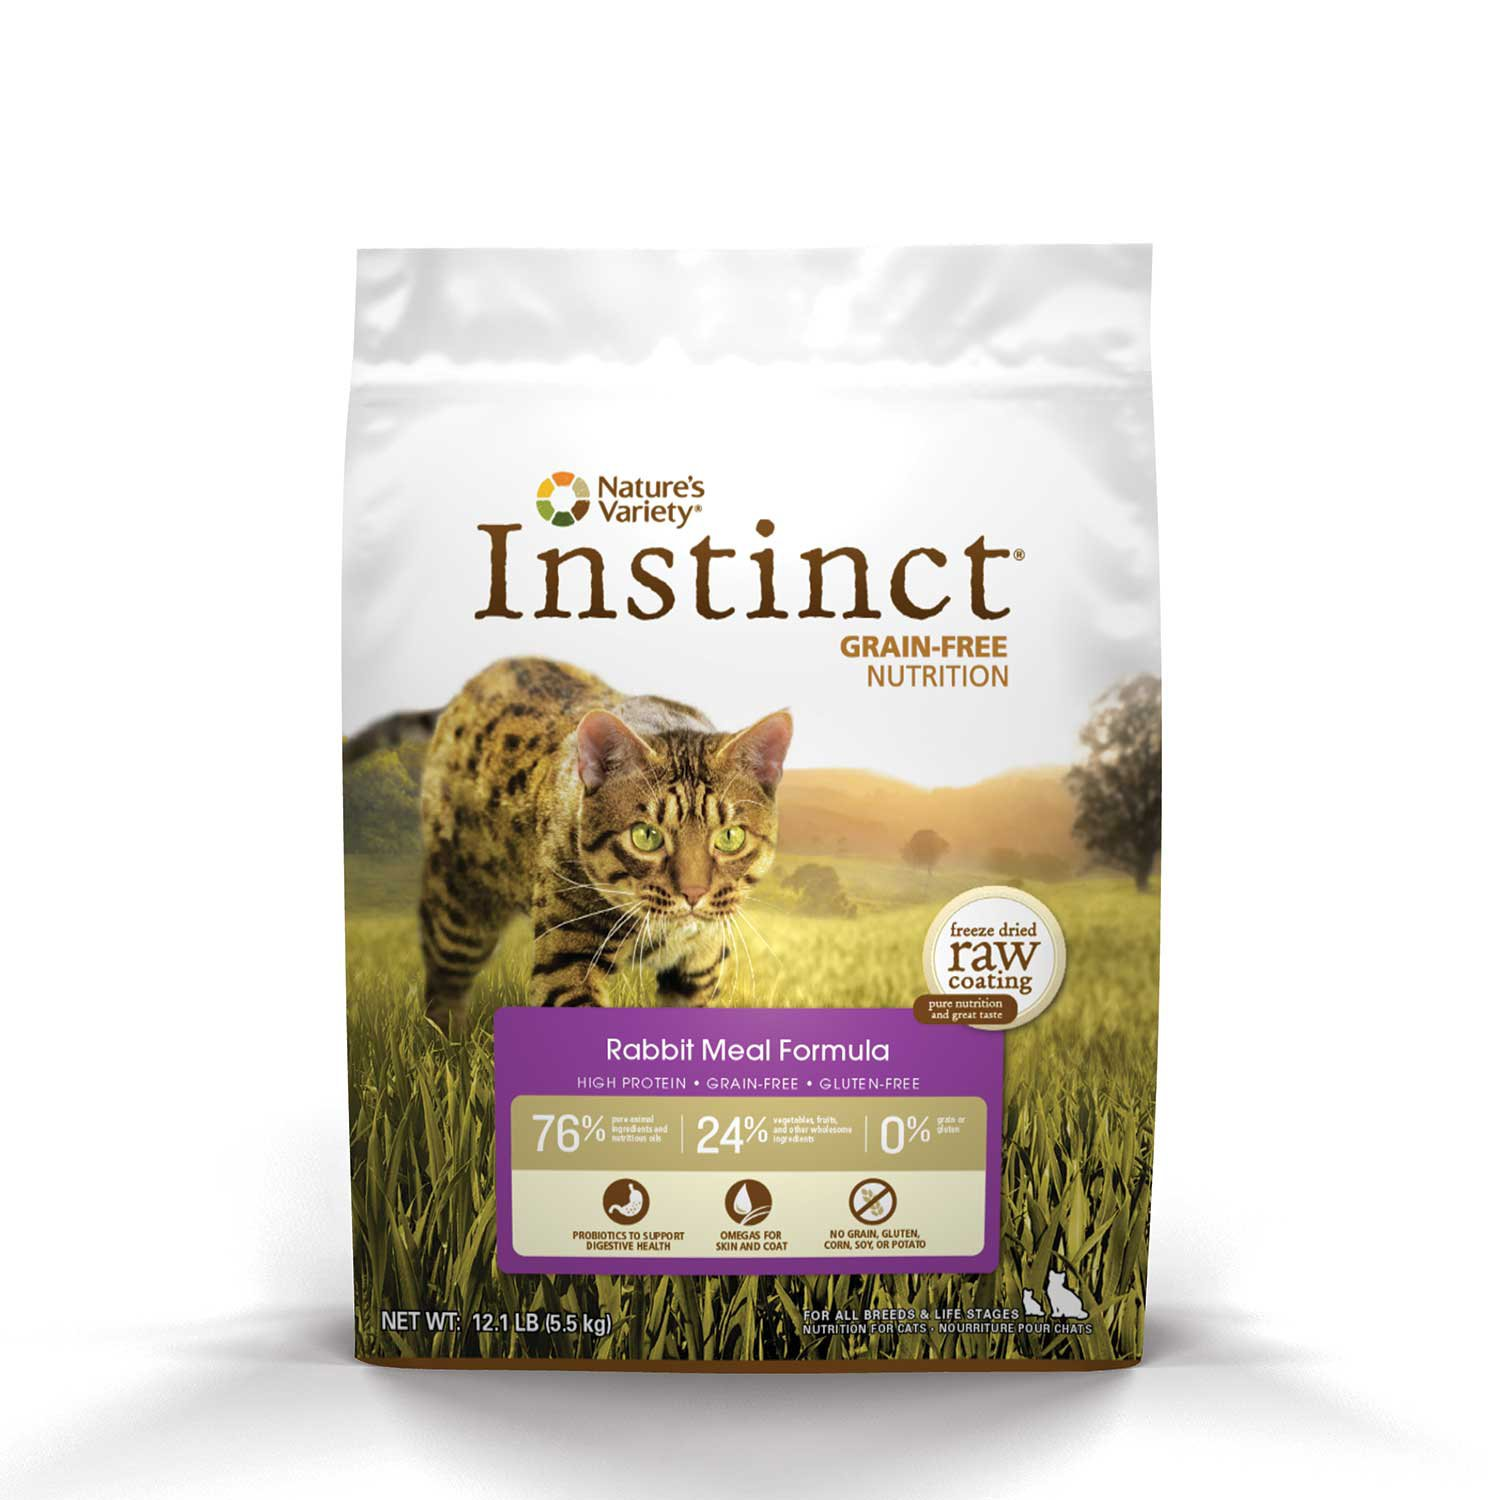 Nature's Variety Instinct Grain-Free Rabbit Meal Cat Food